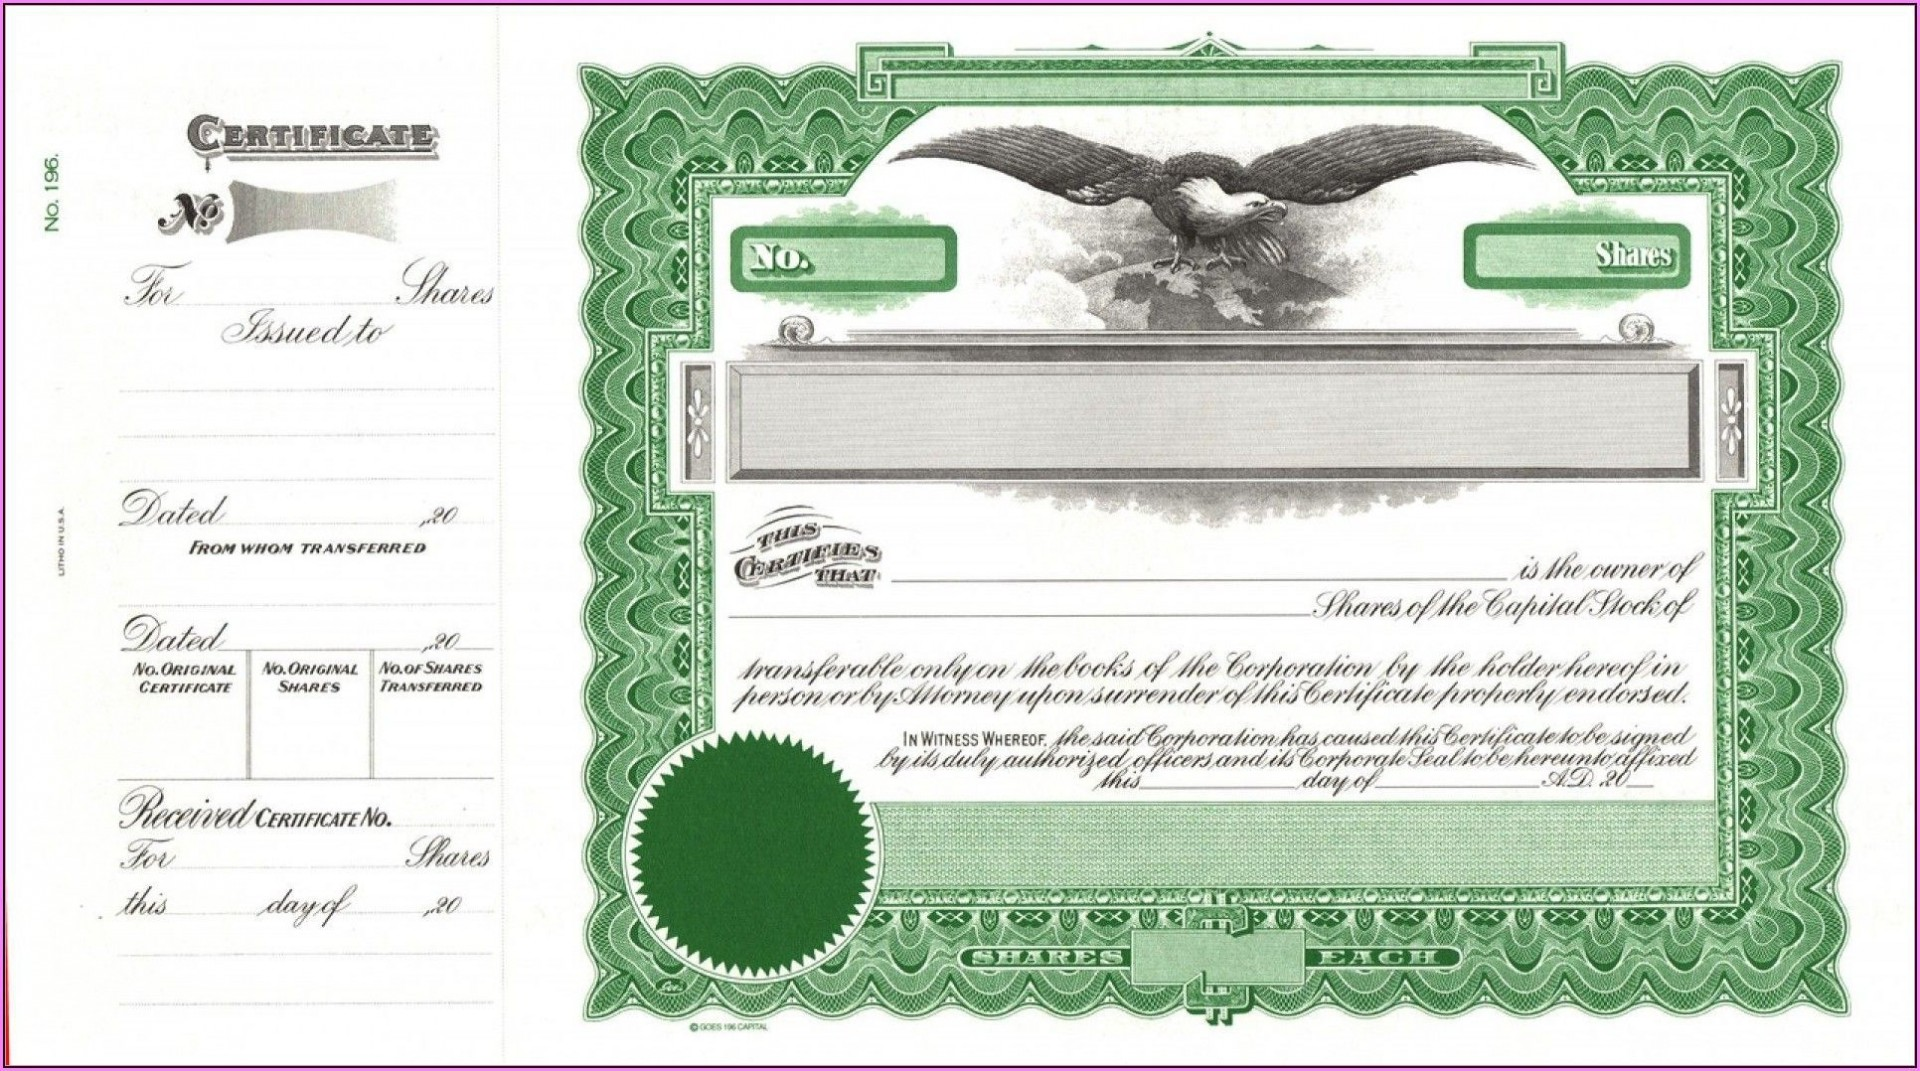 003 Remarkable Stock Certificate Template Word Highest Clarity  Microsoft1920